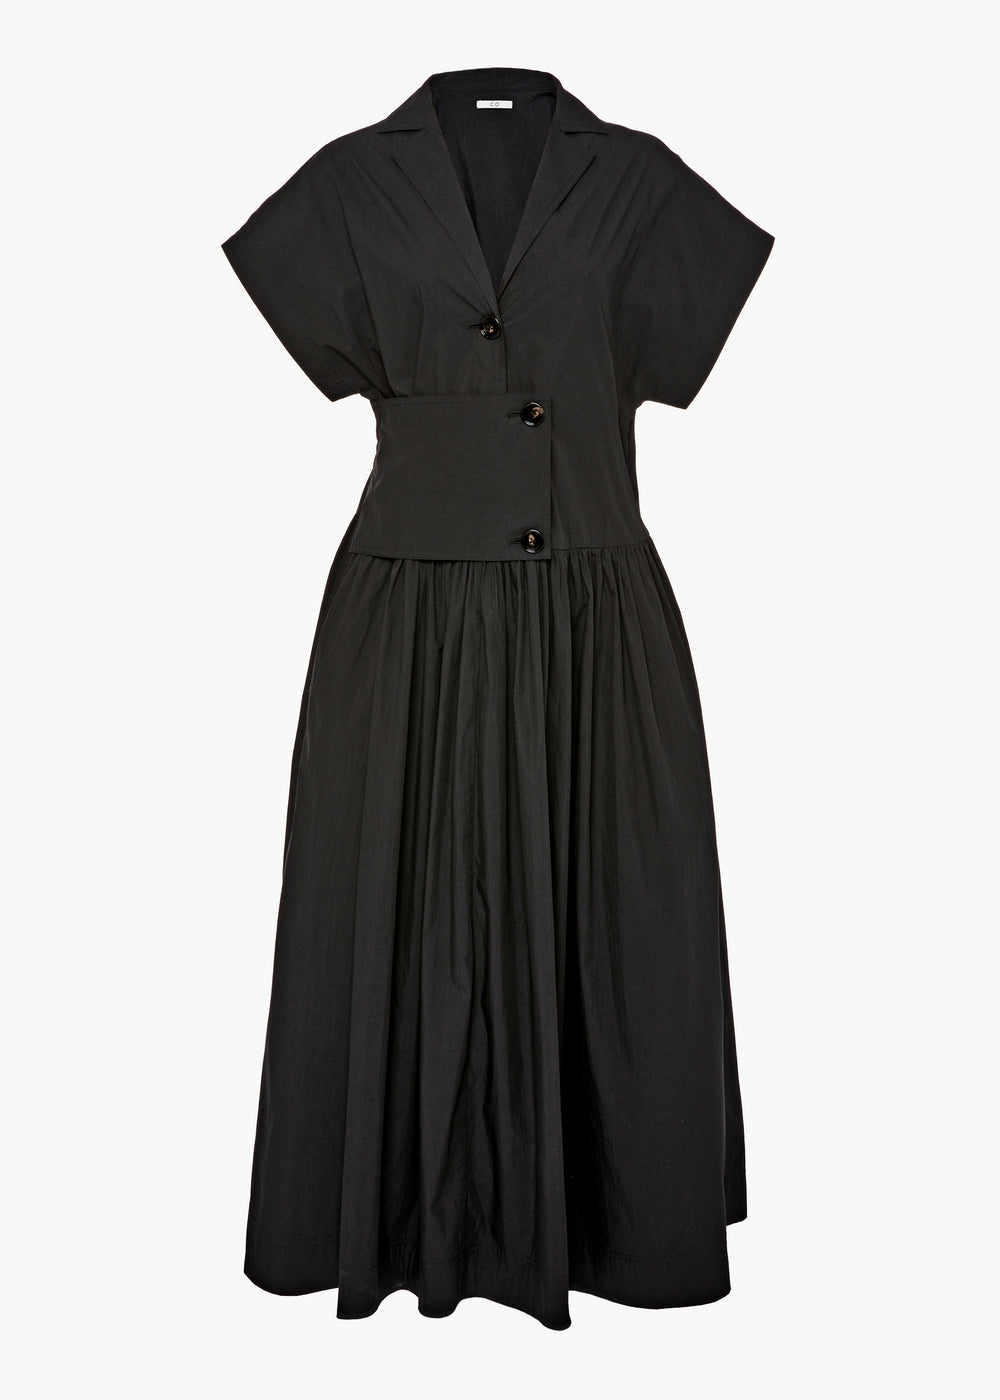 Short Sleeve Dress in Cotton - Black - CO